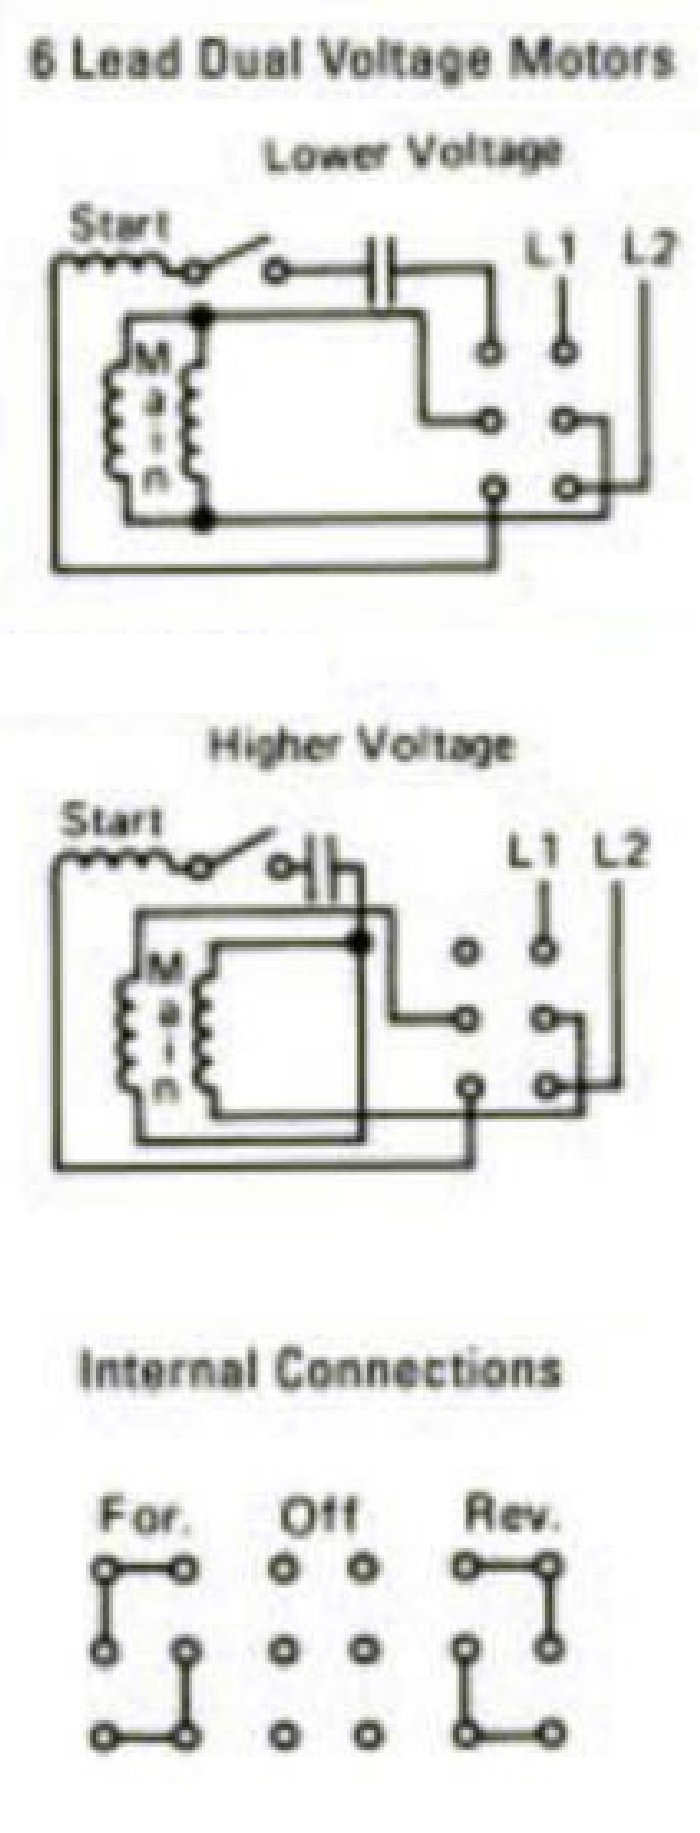 Marine Drum Switch Wiring Diagram Another Diagrams 110 Boat Lift Need Help The Hull Truth Boating And Rh Thehulltruth Com Dayton Electric Motor Century Single Phase